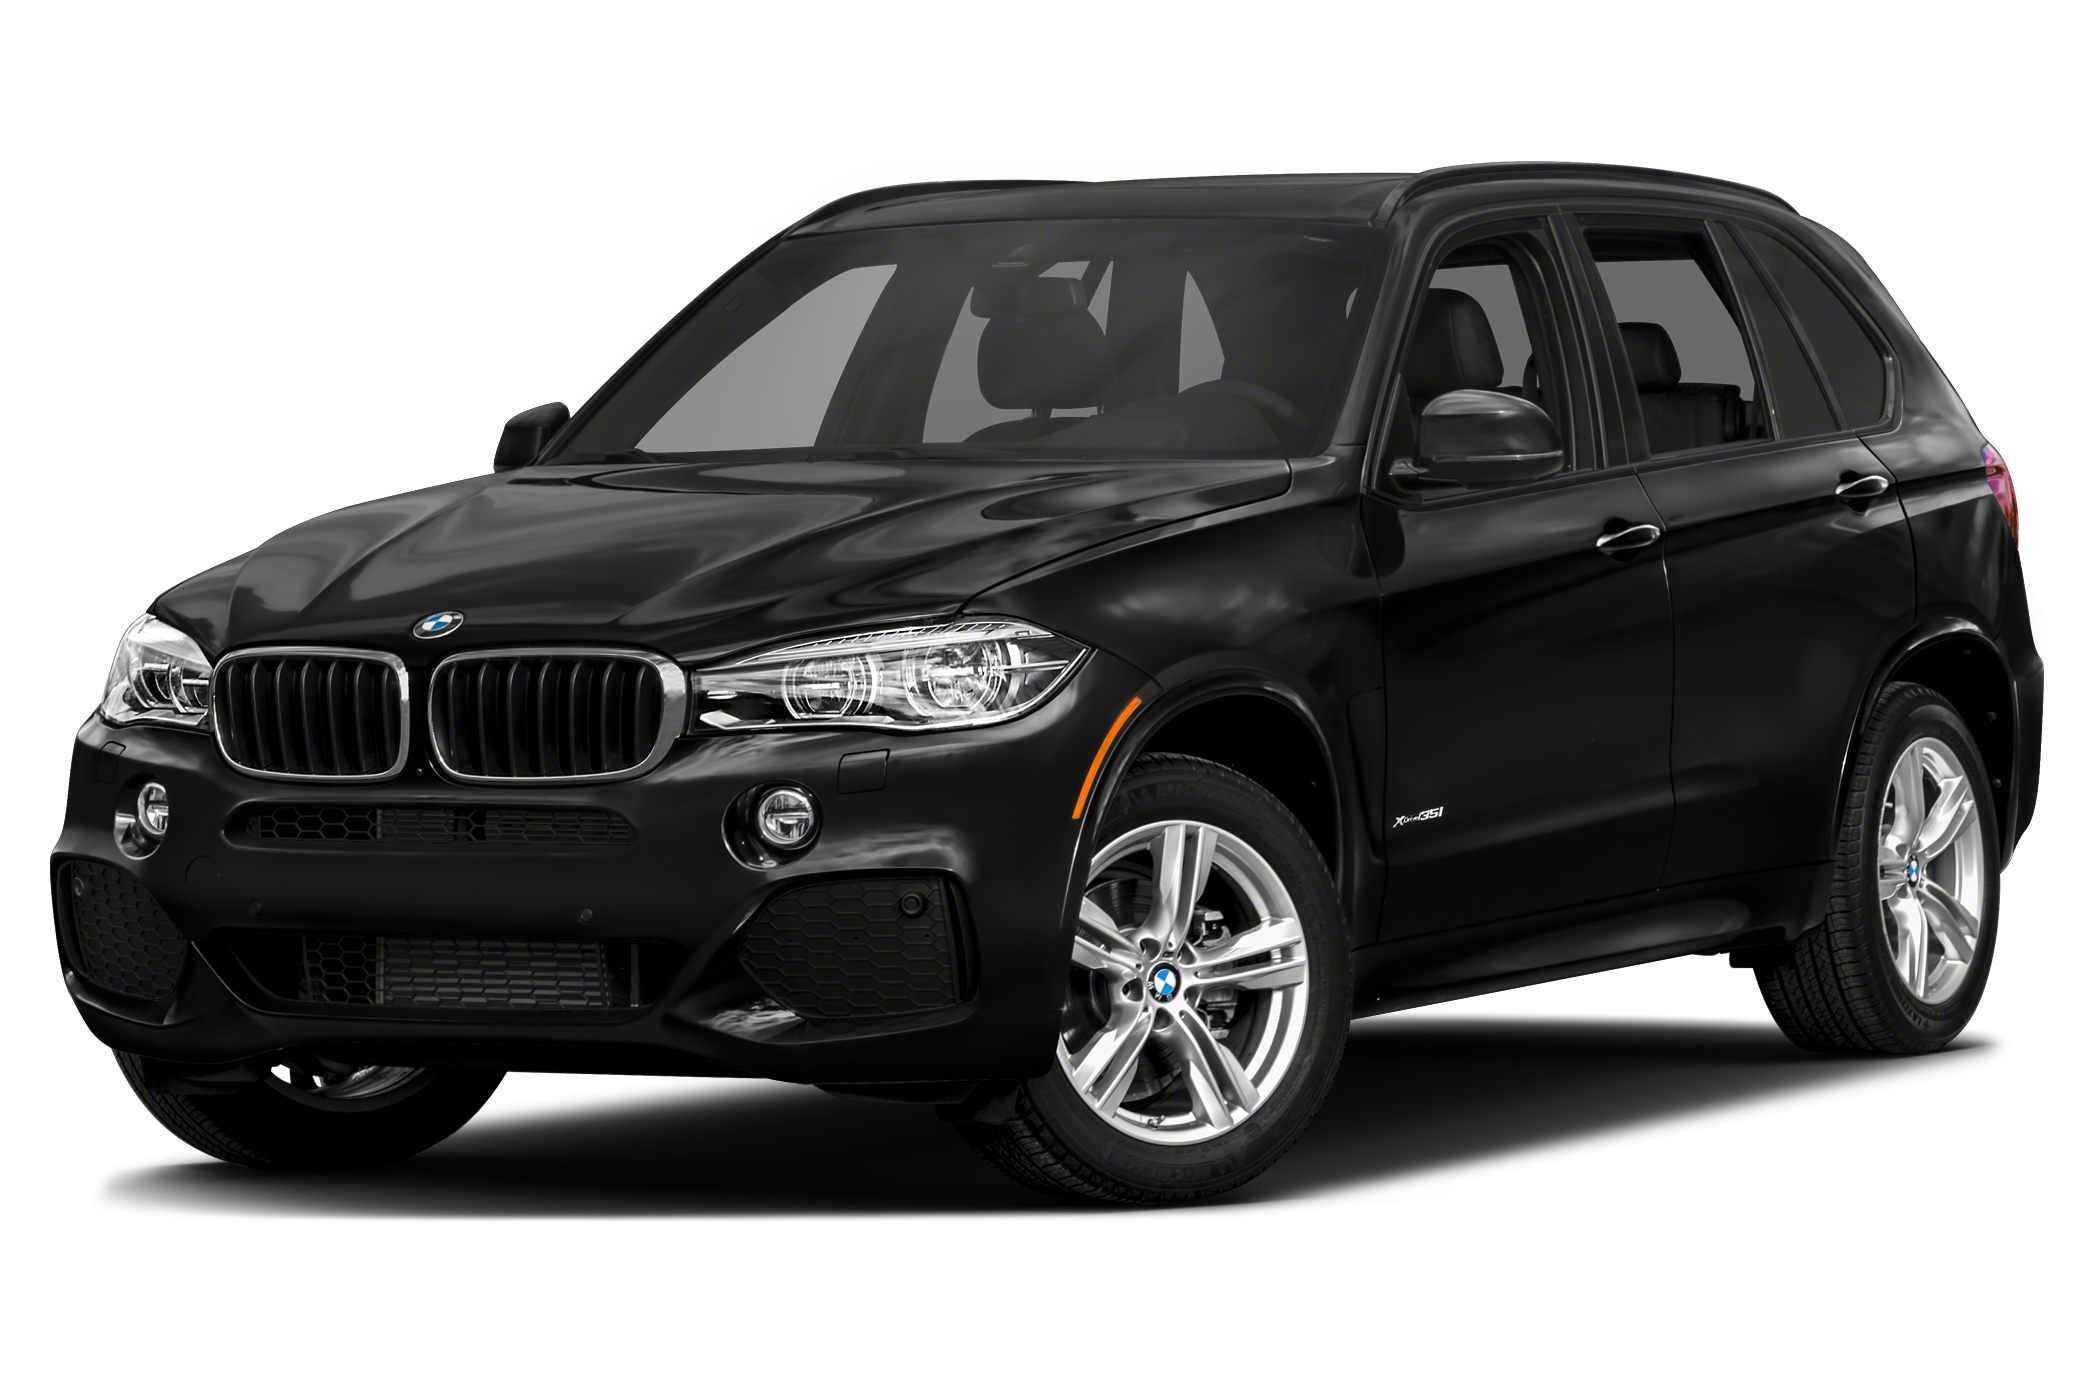 x integrated motor cosy vehicles liter inline cylinder turbo with twinpower iperformance electric models usa bmw